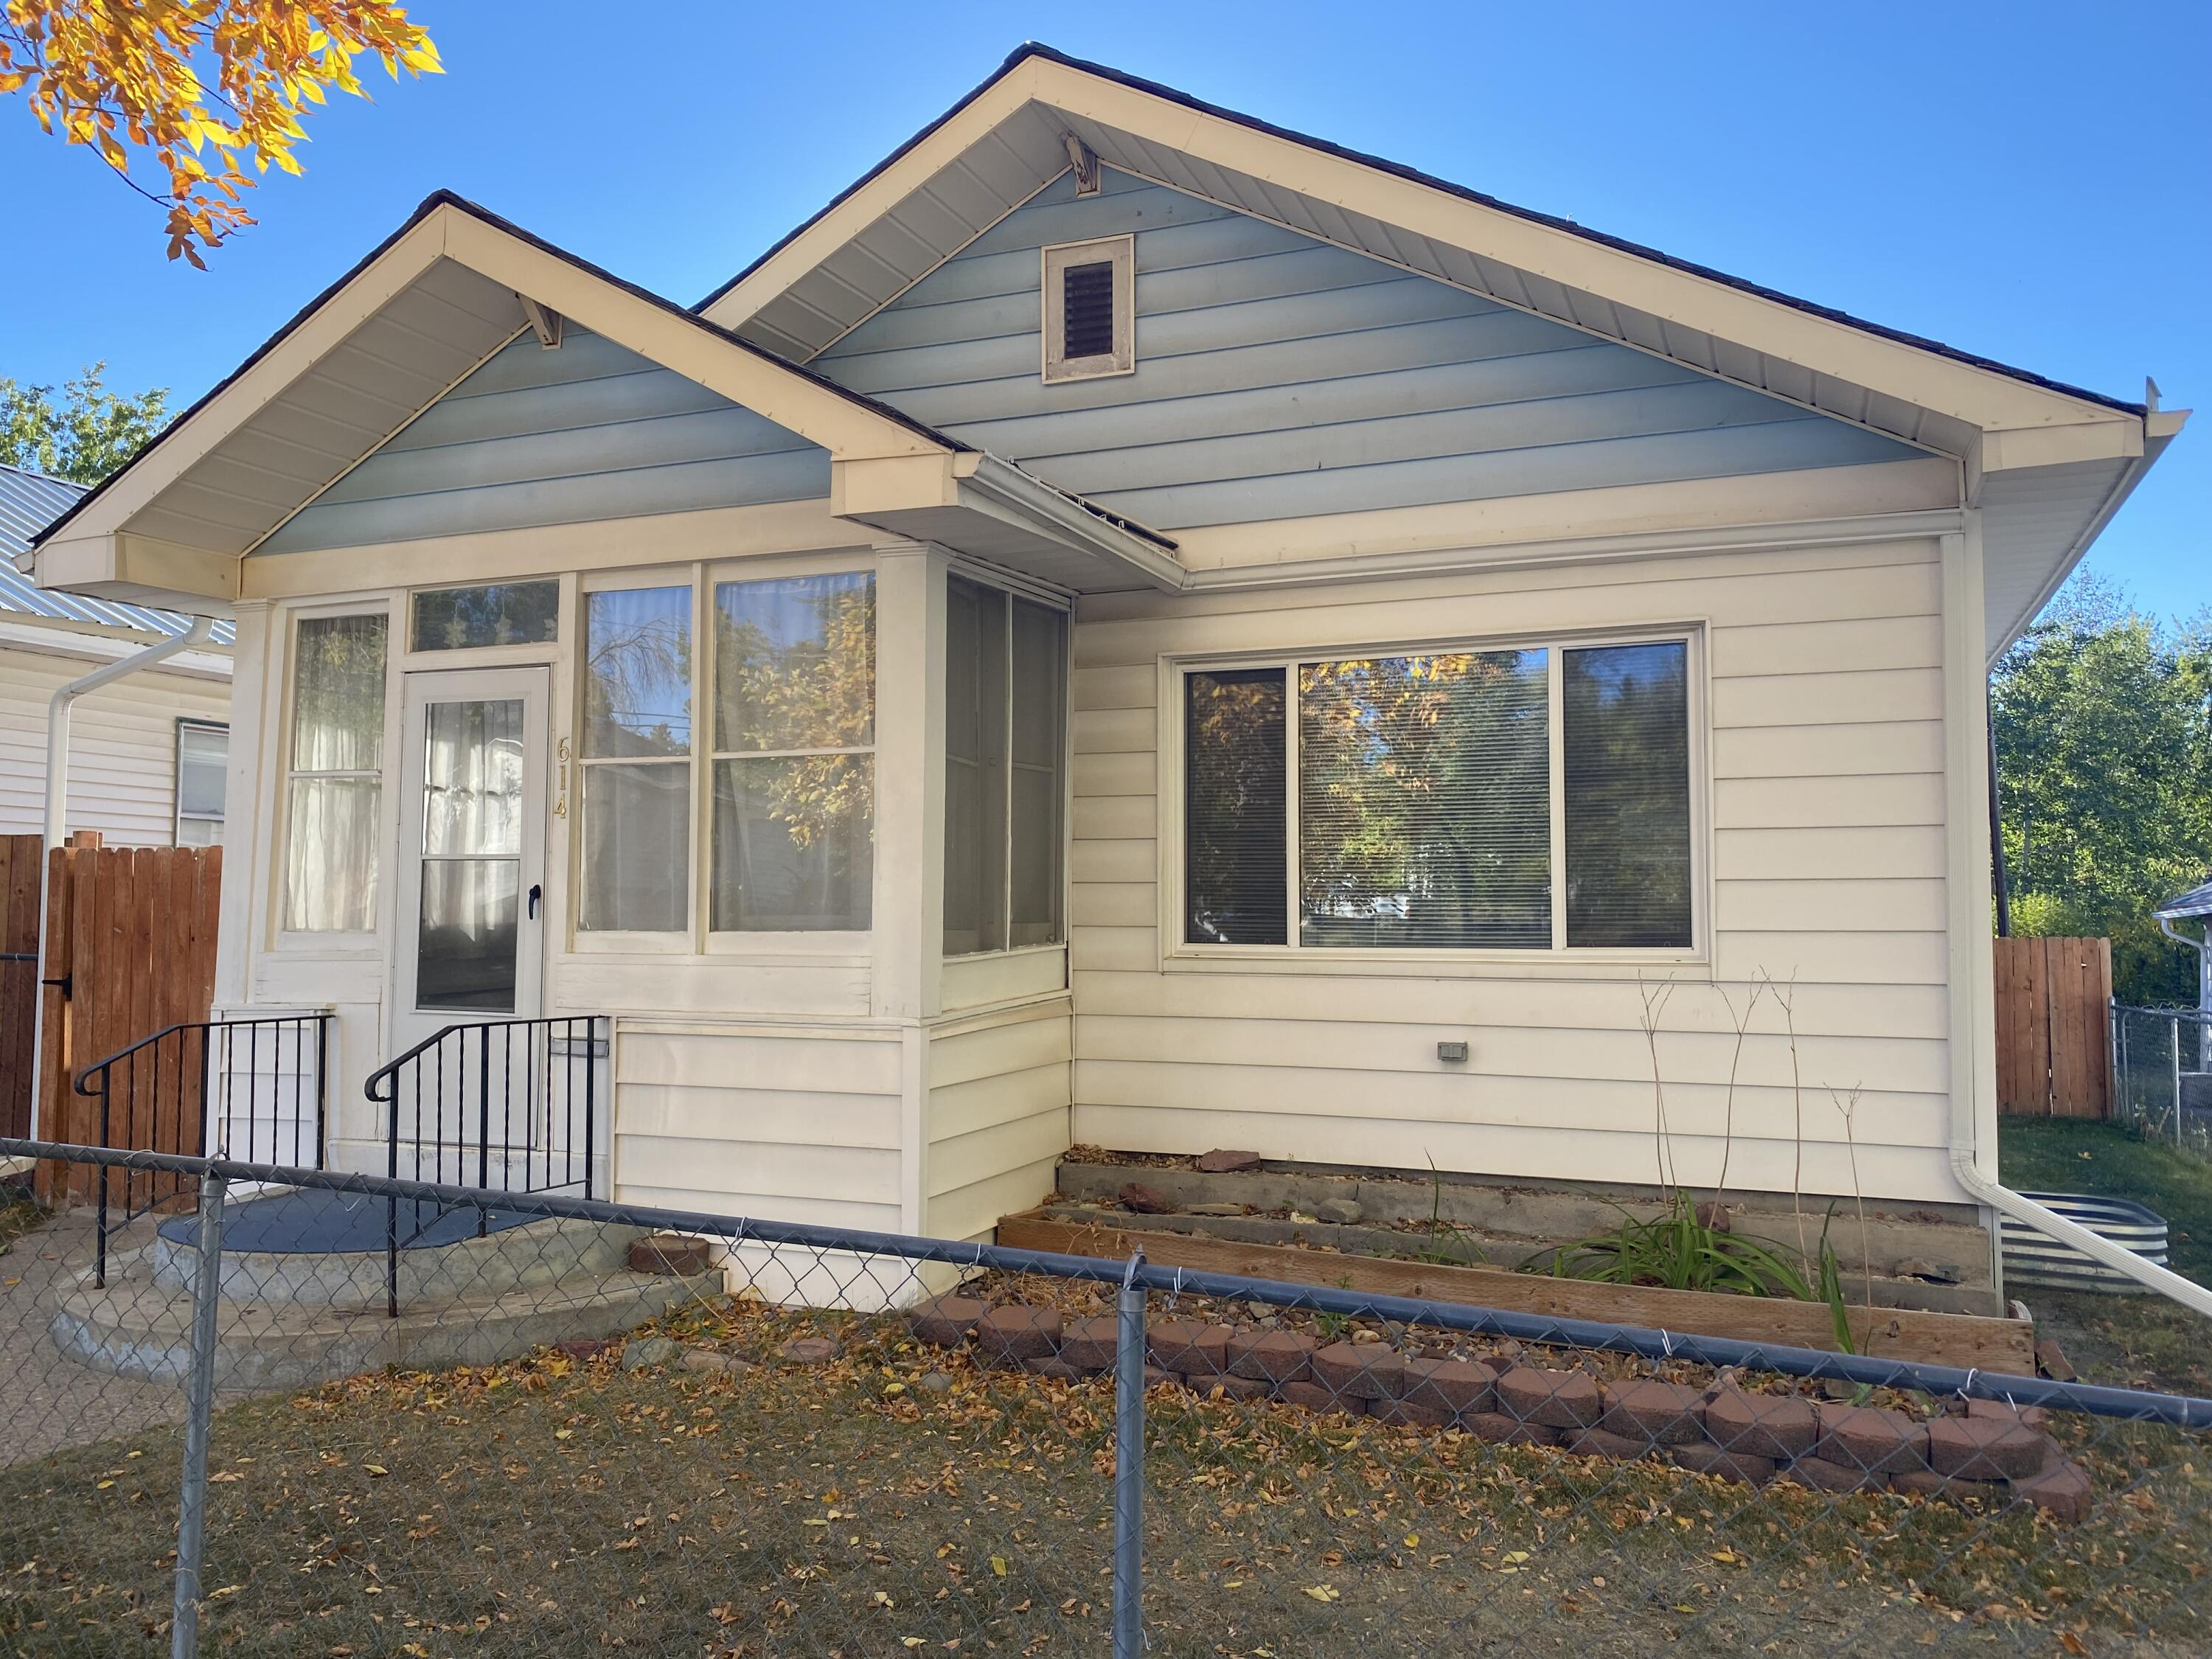 3 Bedroom 1 Bath house with a fences yard.  Downstairs bedroom has egress window.  Backyard has a fenced yard and shed.